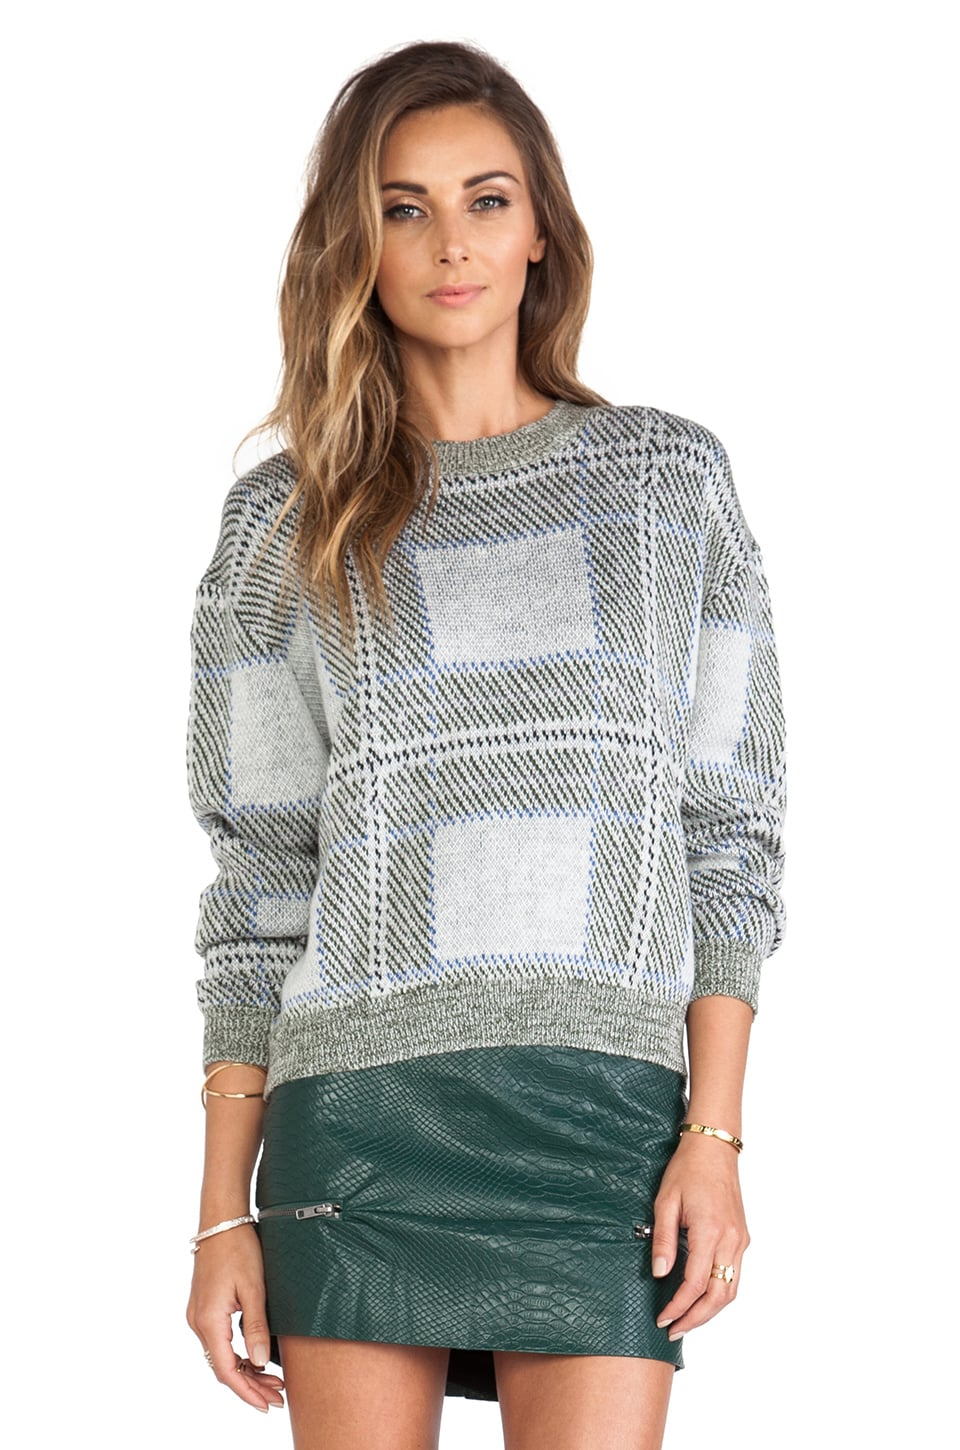 Lovers + Friends Kate Pullover in Plaid